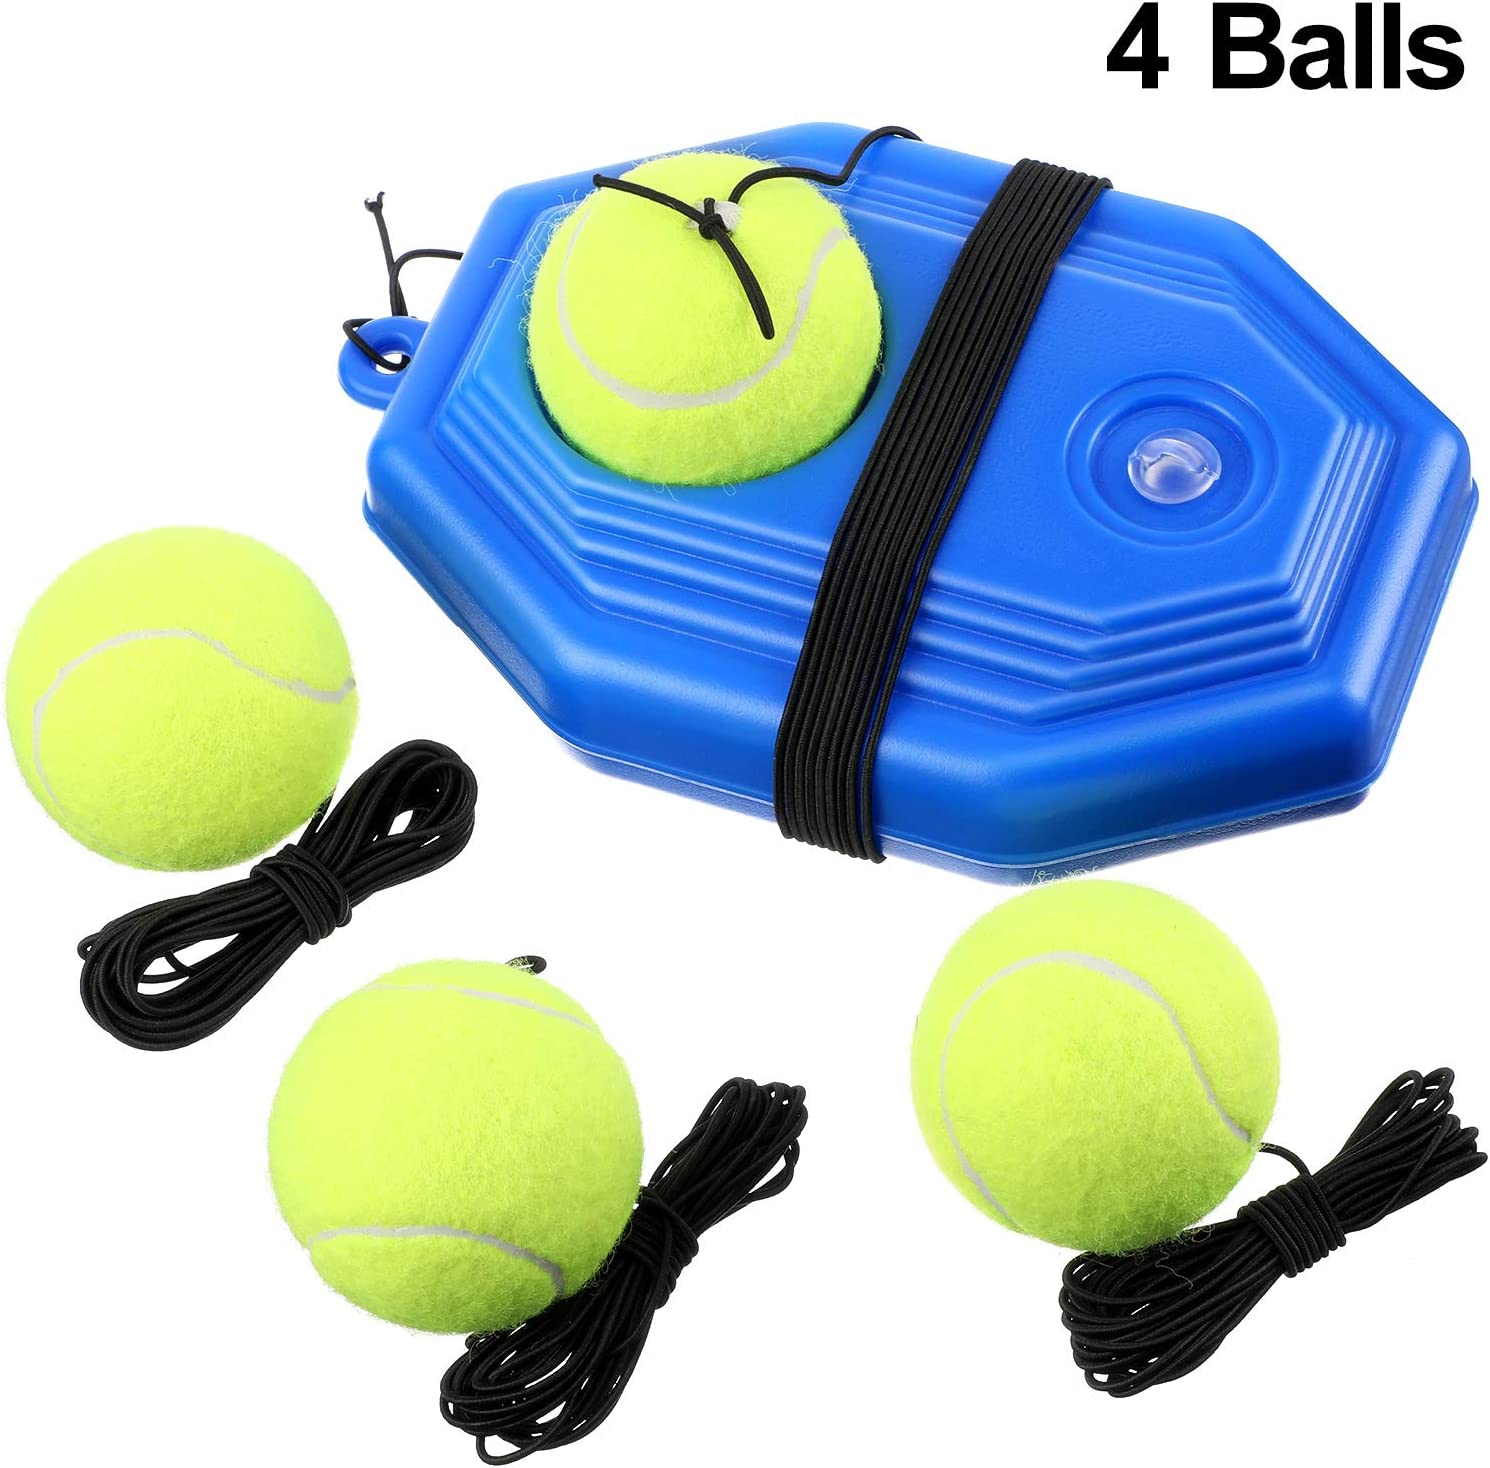 Gejoy 5 Pieces Tennis Training Equipment Tennis Trainer Rebounder Ball Trainer Set with String for Kids Youth Beginner Practice at Home : Sports & Outdoors